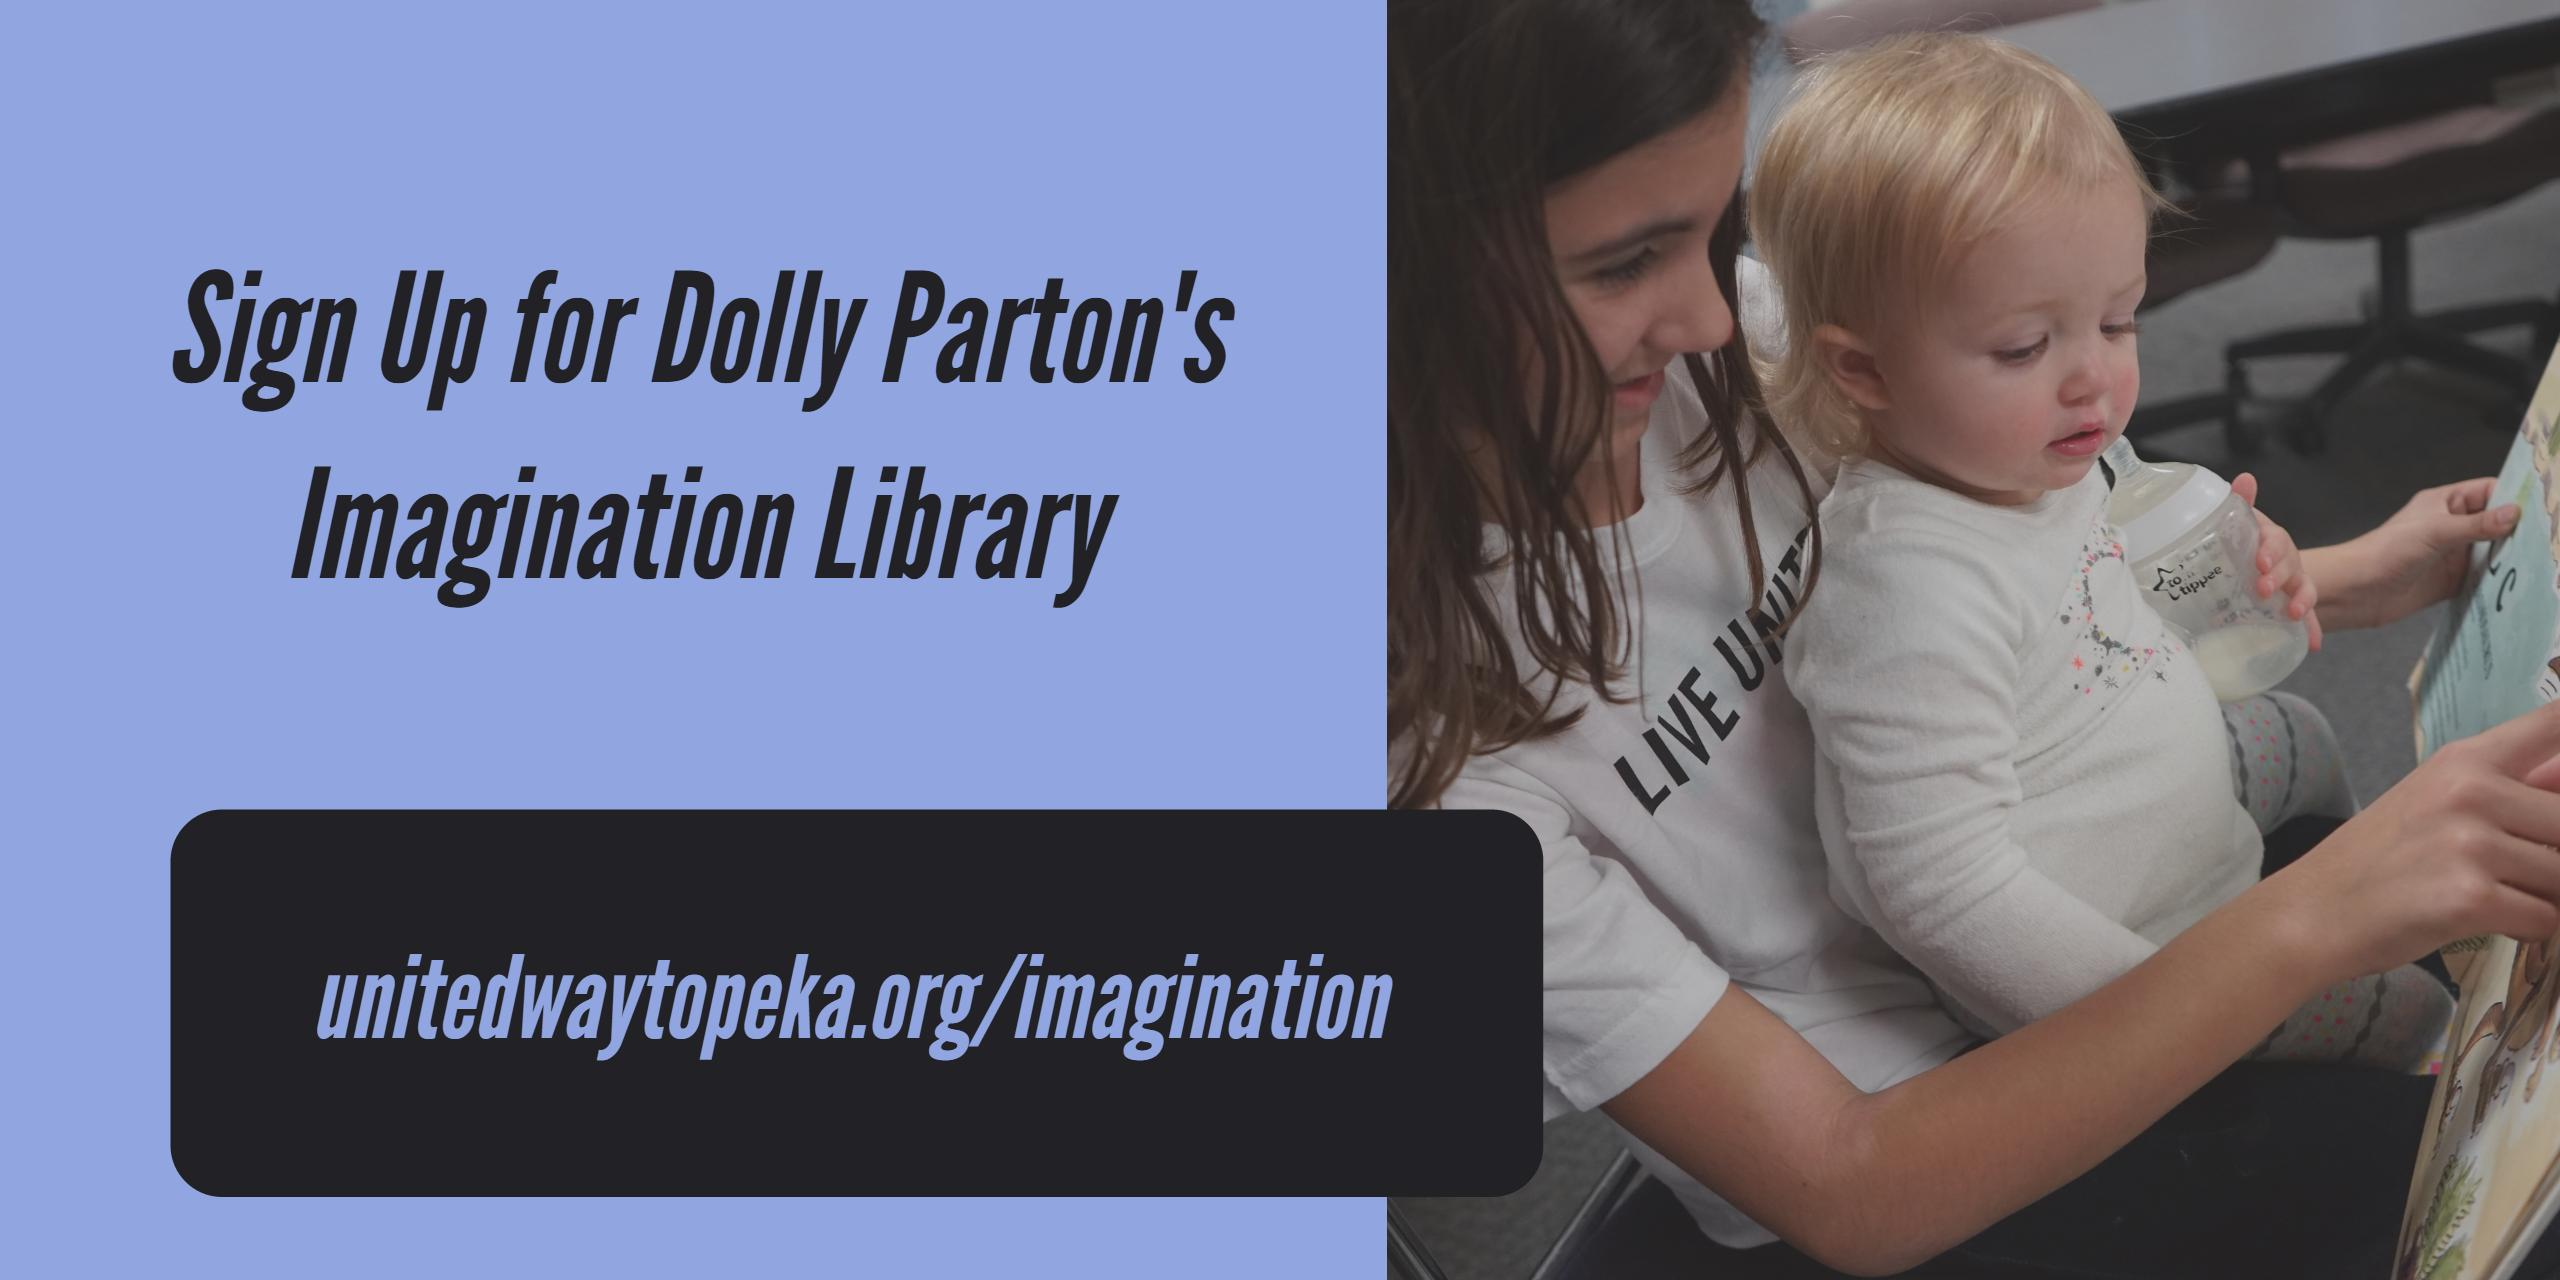 Sign up for Dolly Parton's Imagination Library